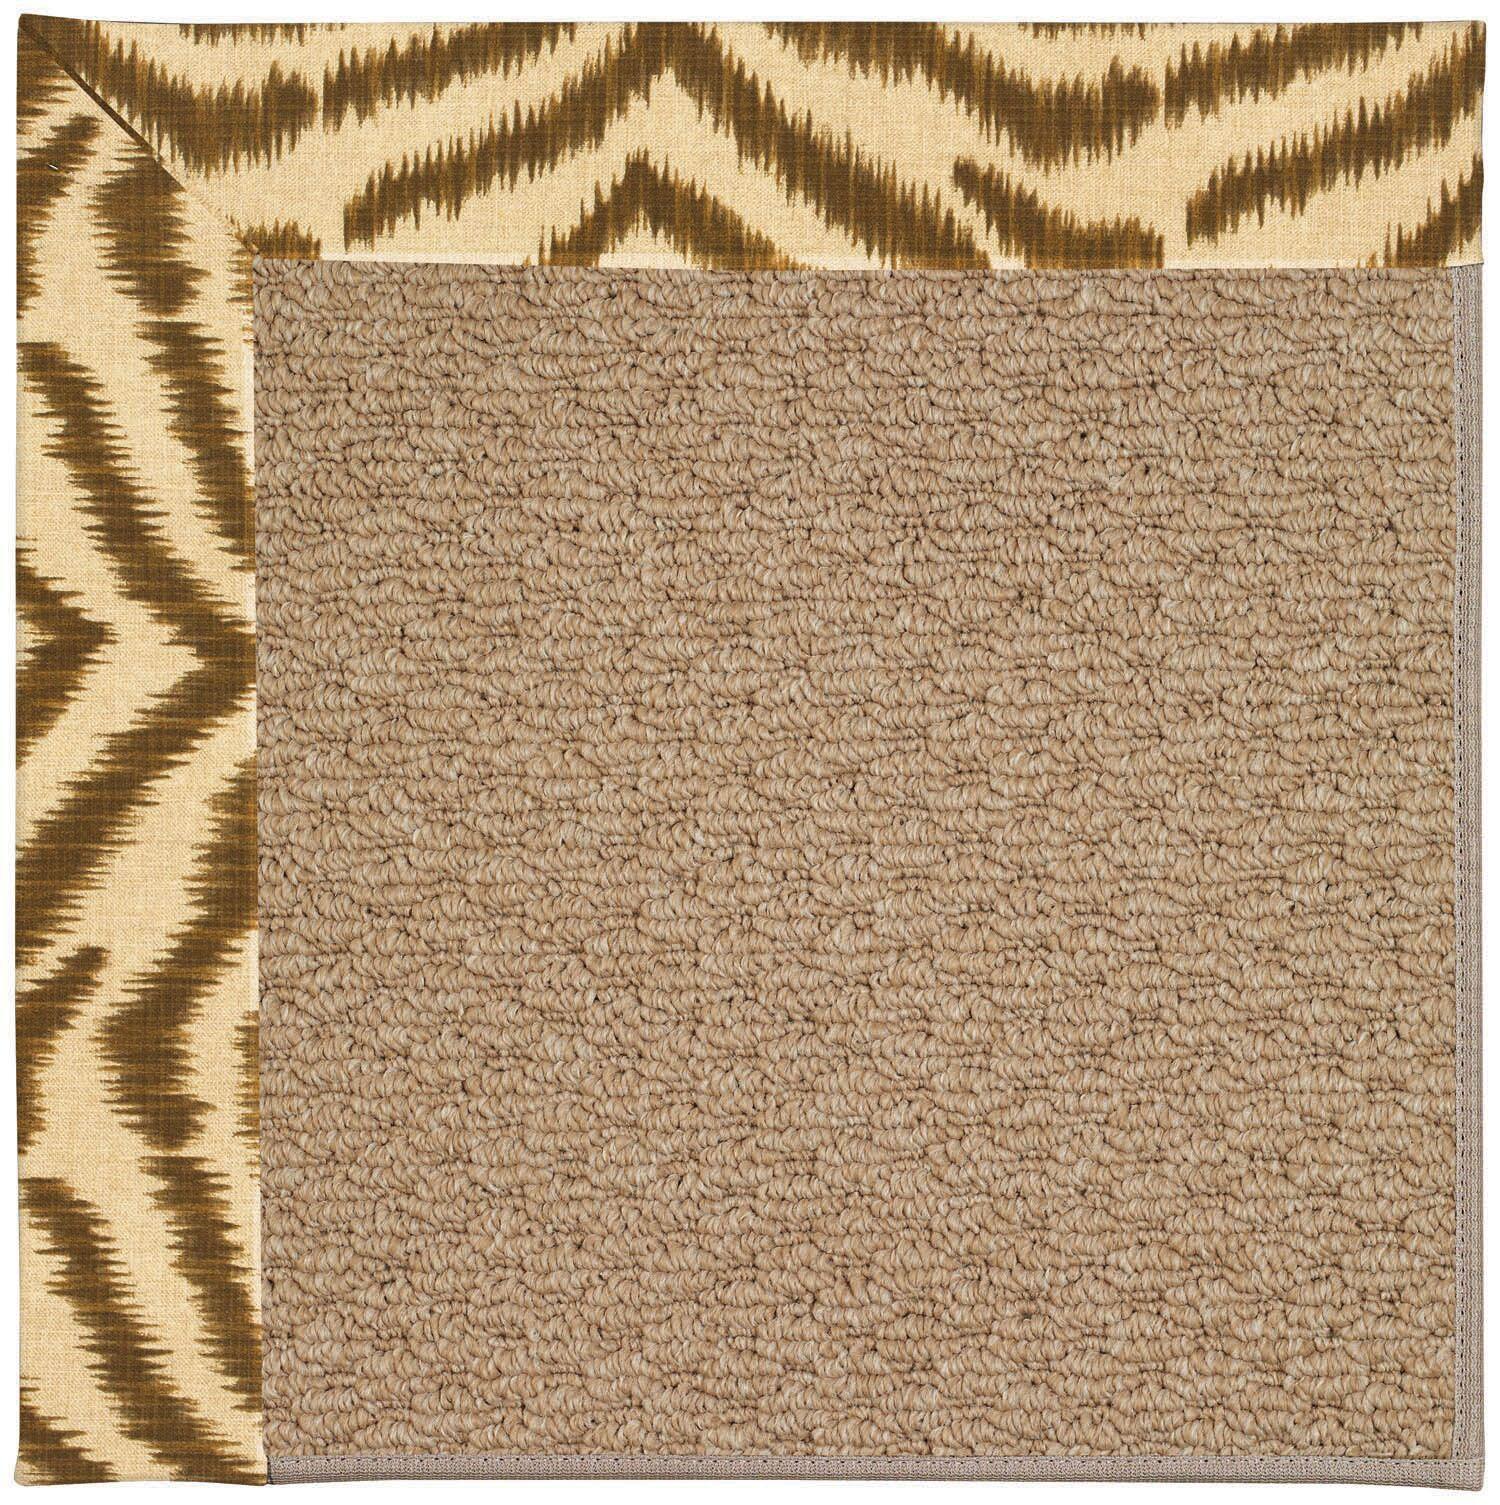 Lisle Machine Tufted Tawny/Brown Indoor/Outdoor Area Rug Rug Size: Rectangle 8' x 10'